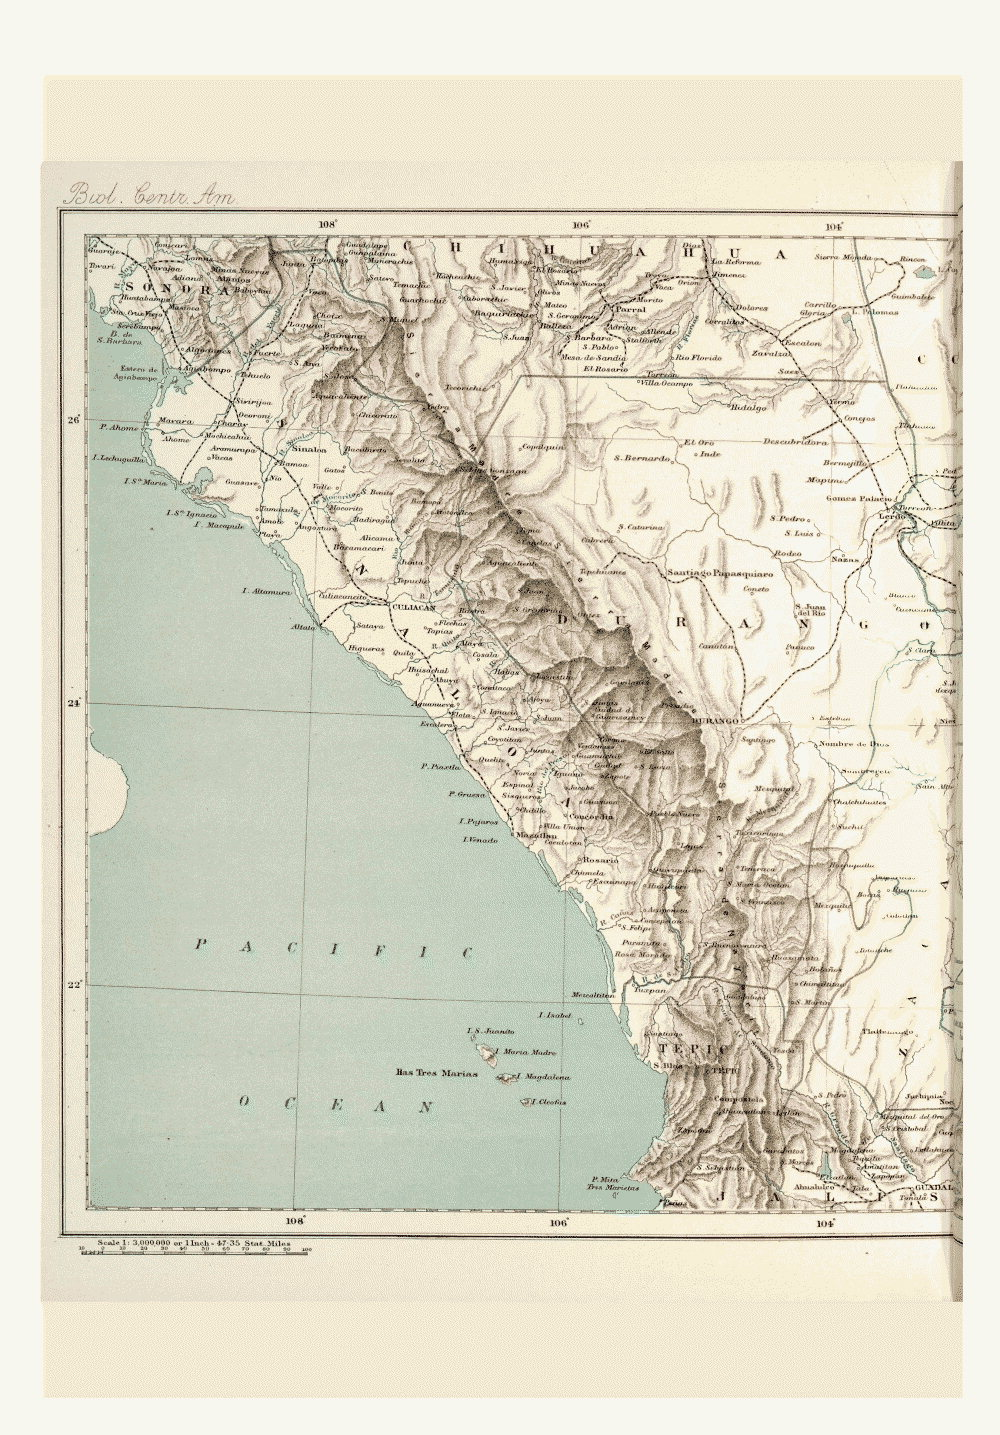 Maps of Central America,  Image number:bca_01_00_00_186